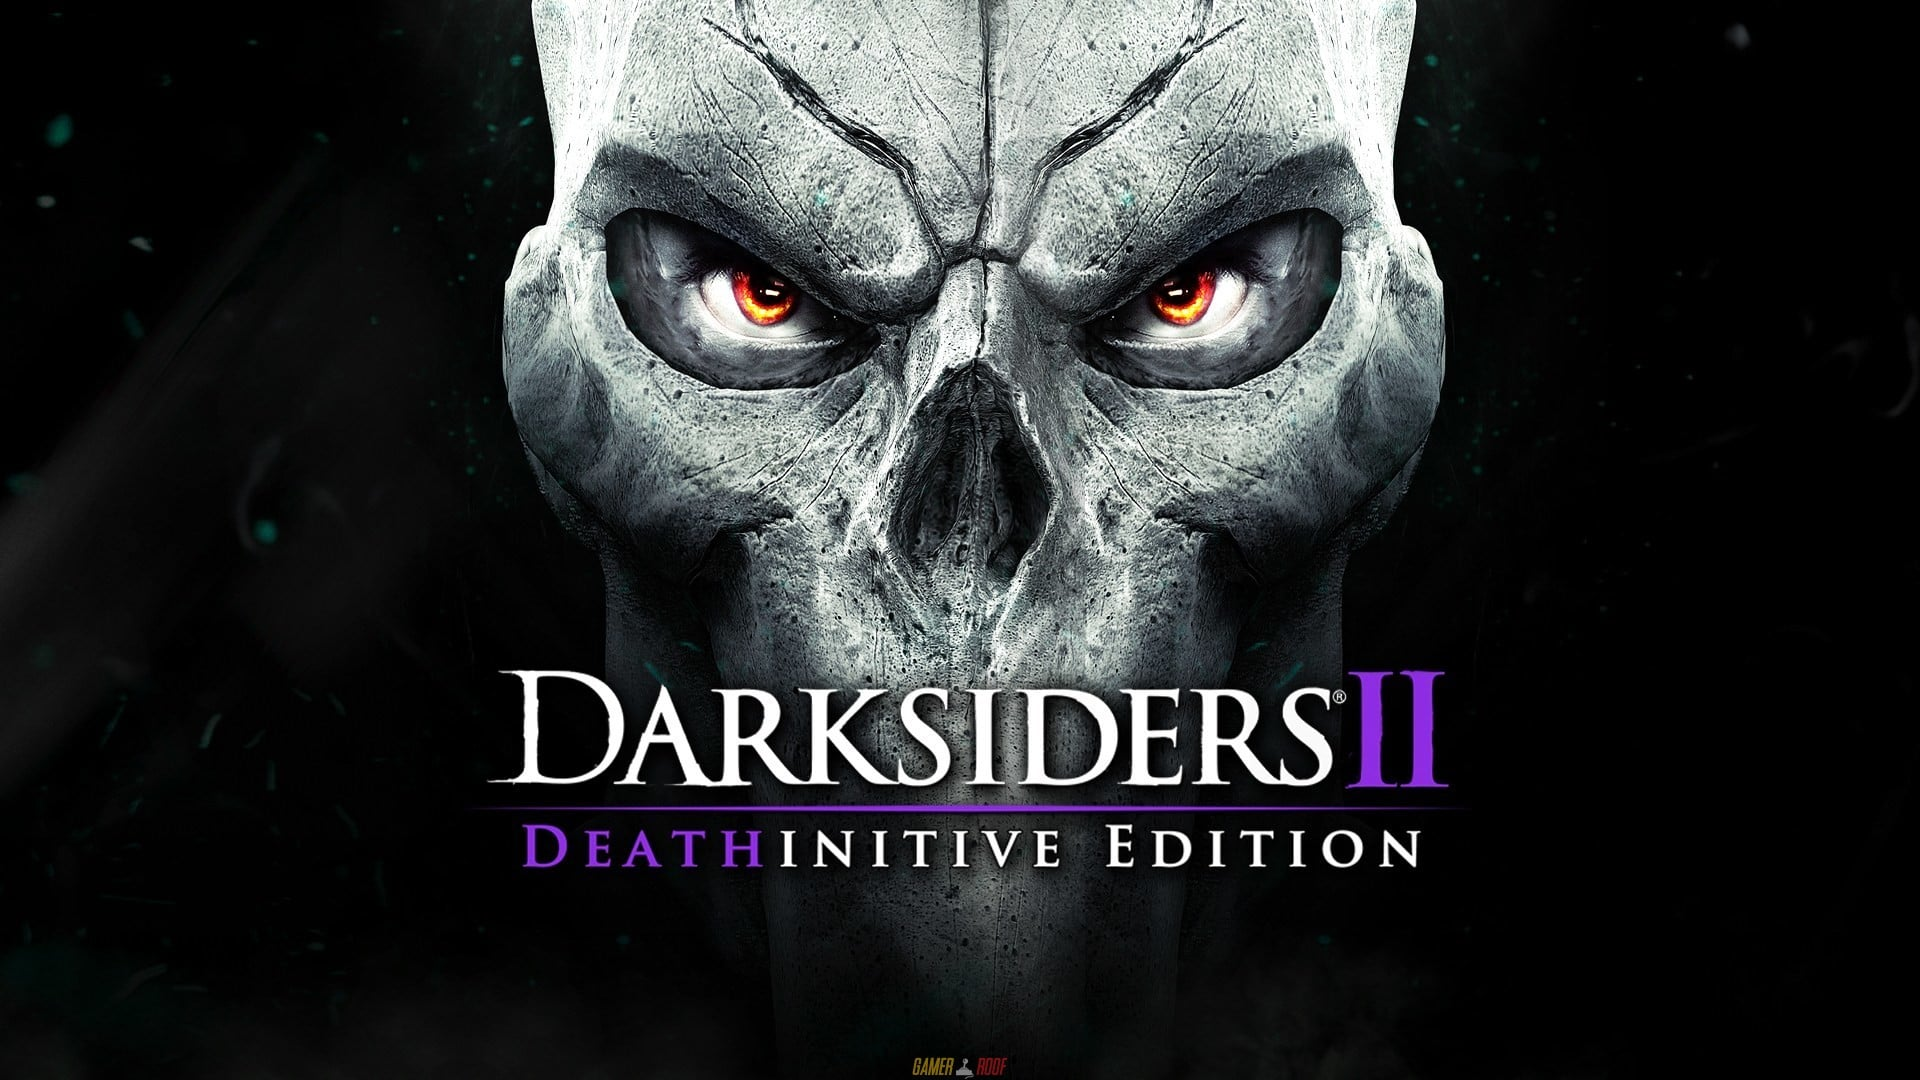 Darksiders 2 Deathinitive Edition Nintendo Switch Version Review Full Game Free Download 2019